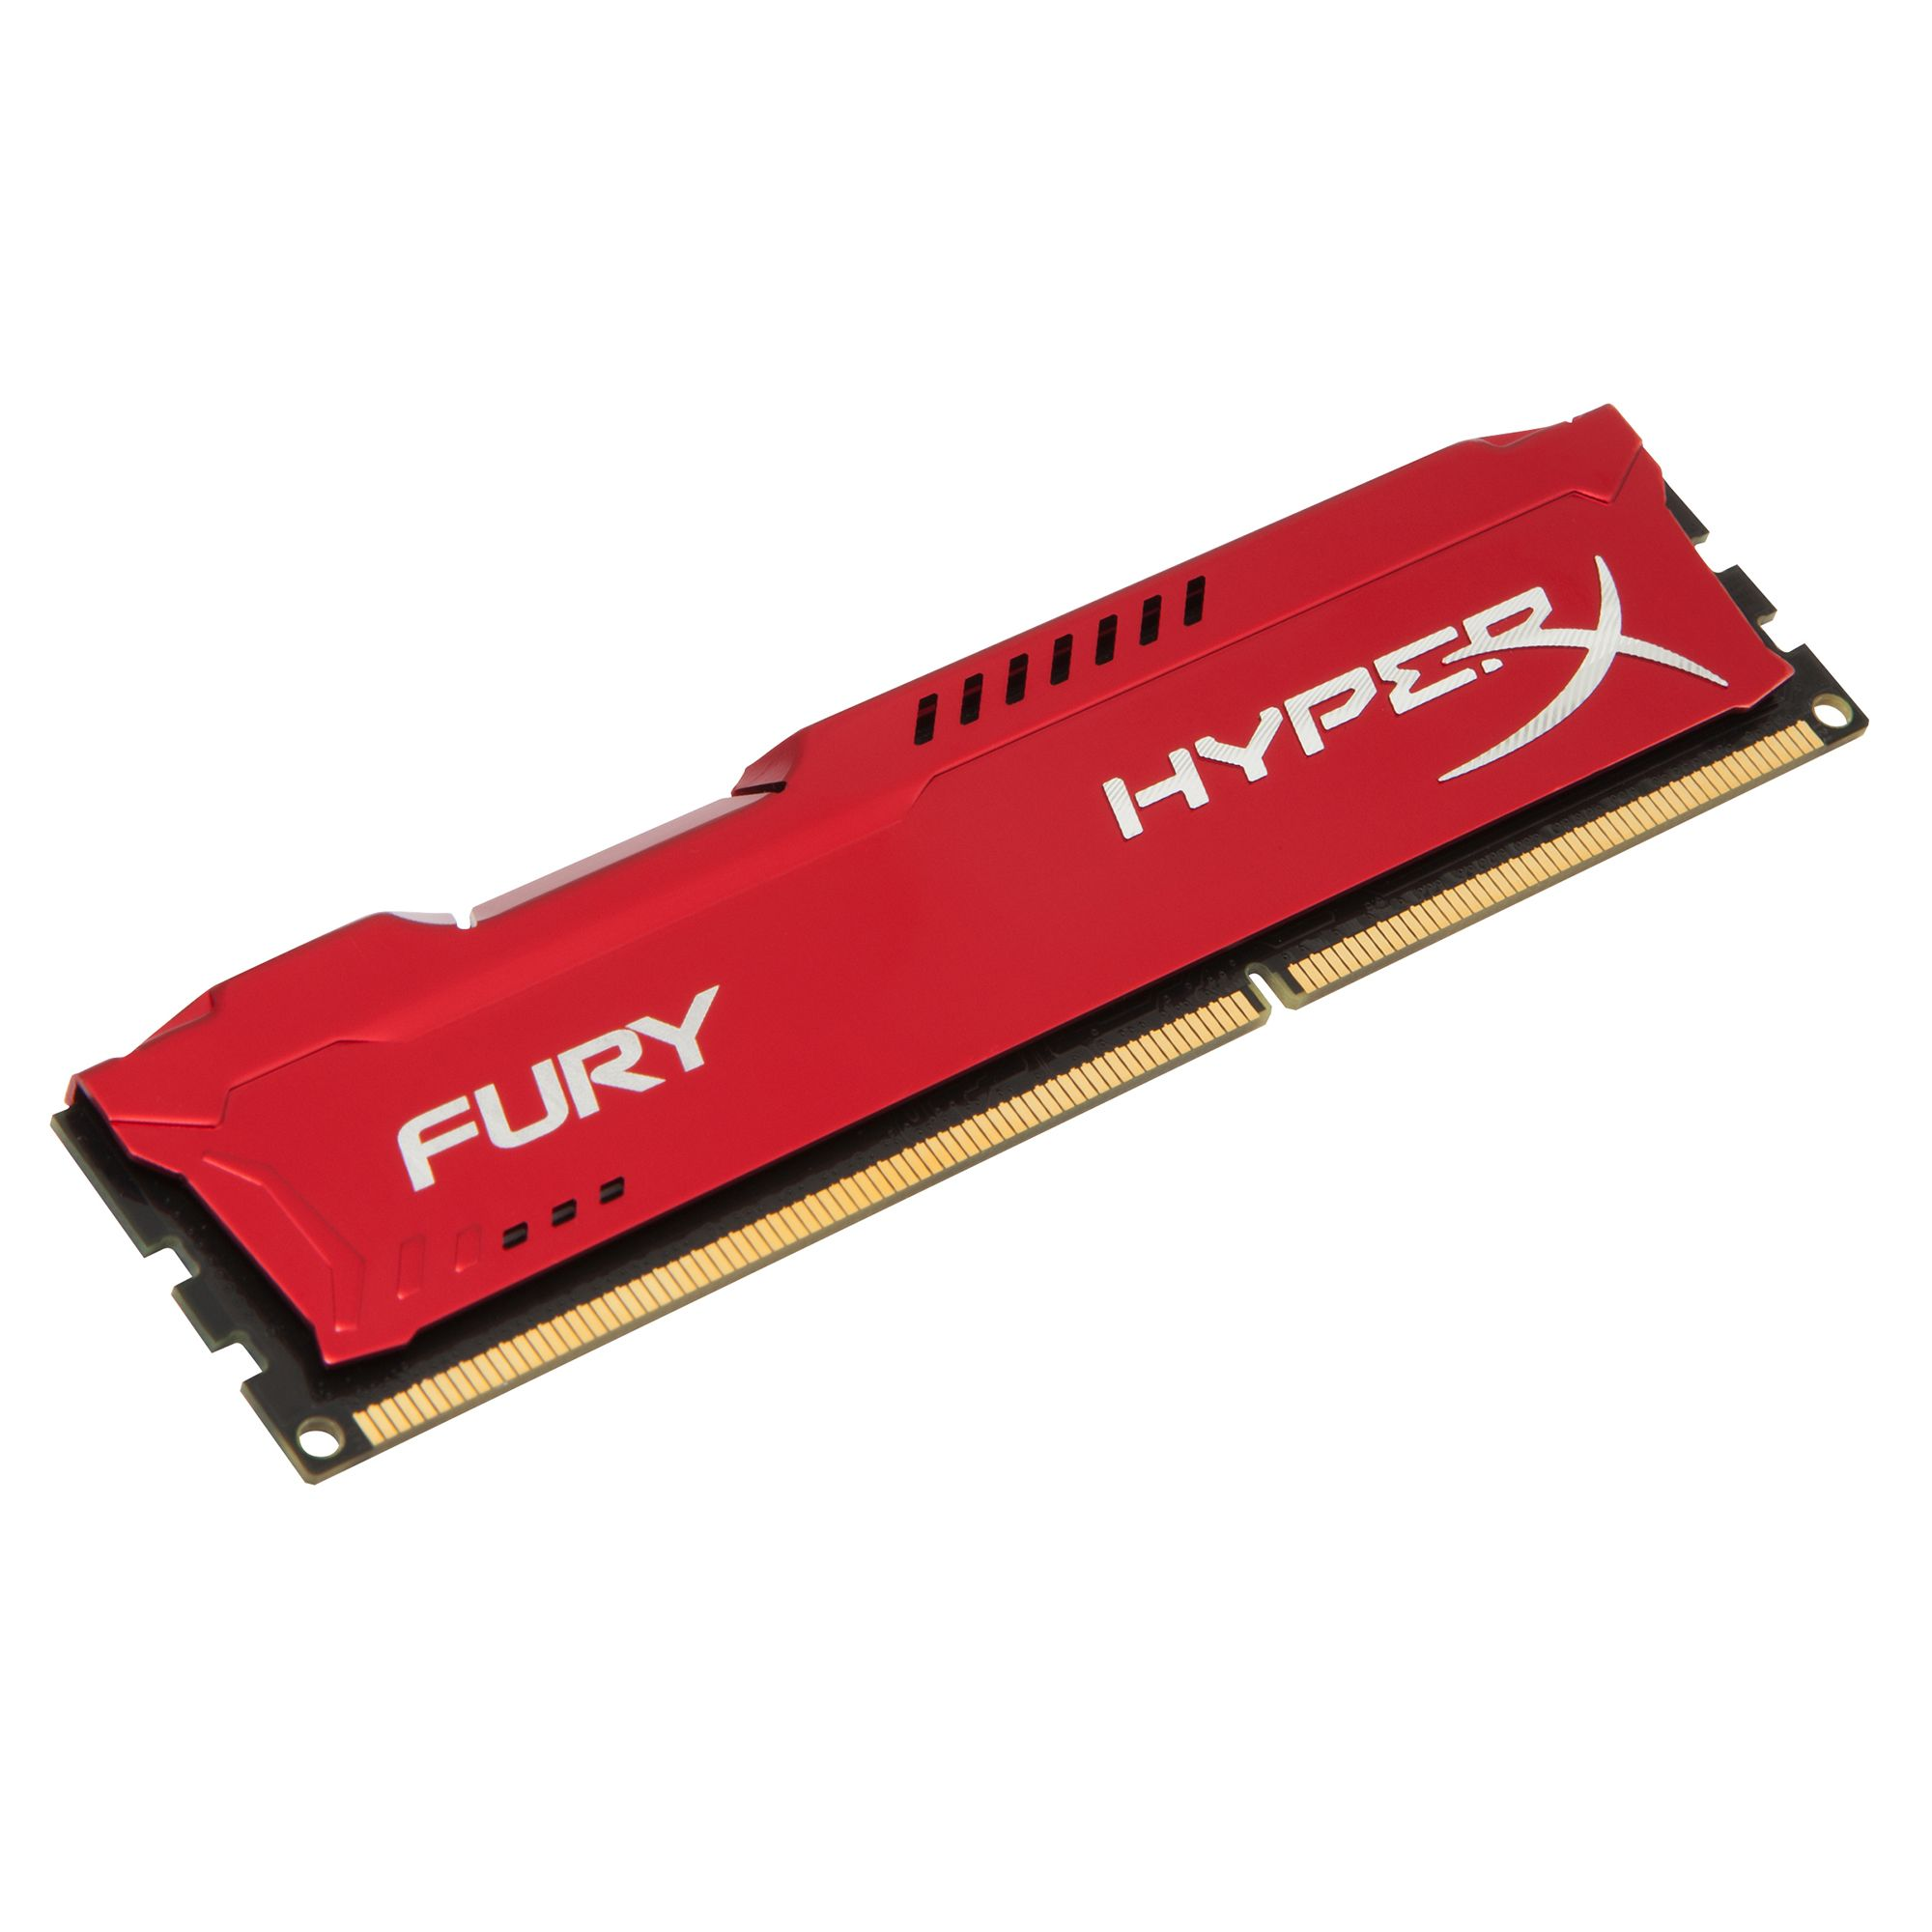 Memorie Desktop Kingston HyperX Fury Red 4GB DDR3 1333 MHz